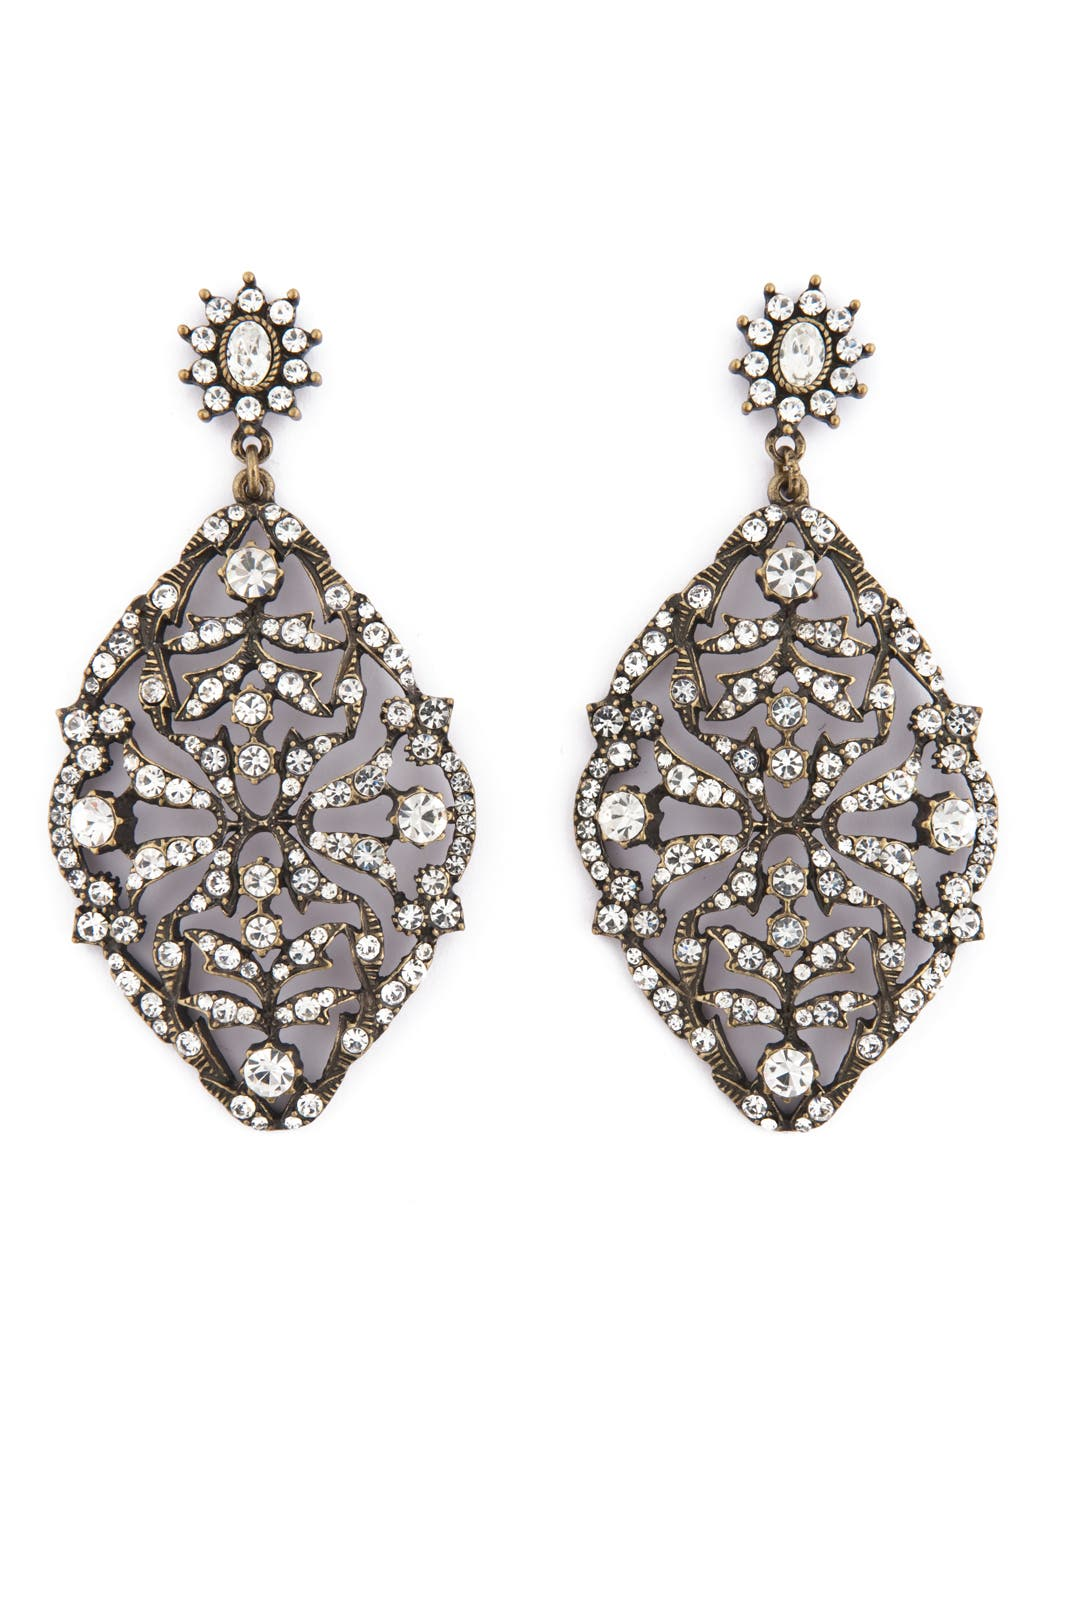 Grand Entrance Earrings by Badgley Mischka Jewelry